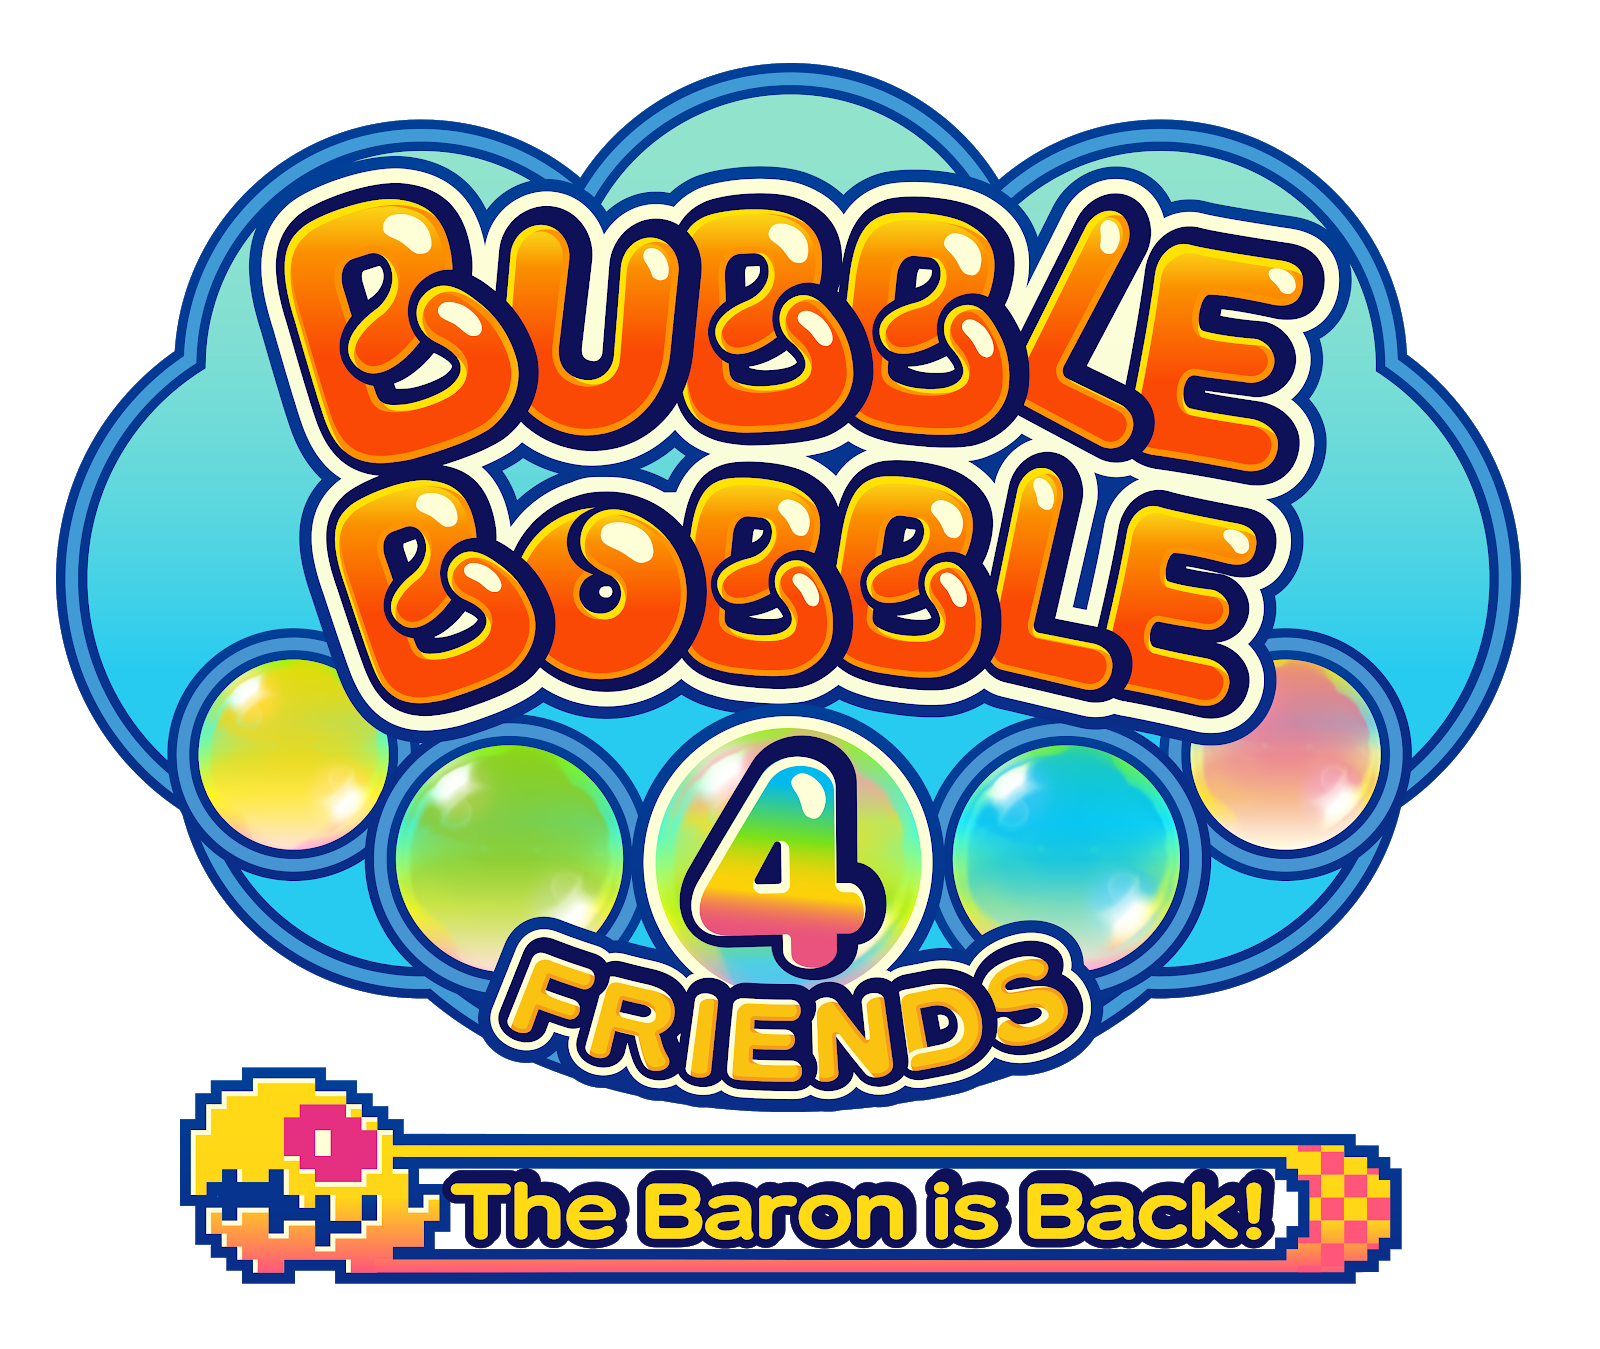 Bubble Bobble, The Baron is Back